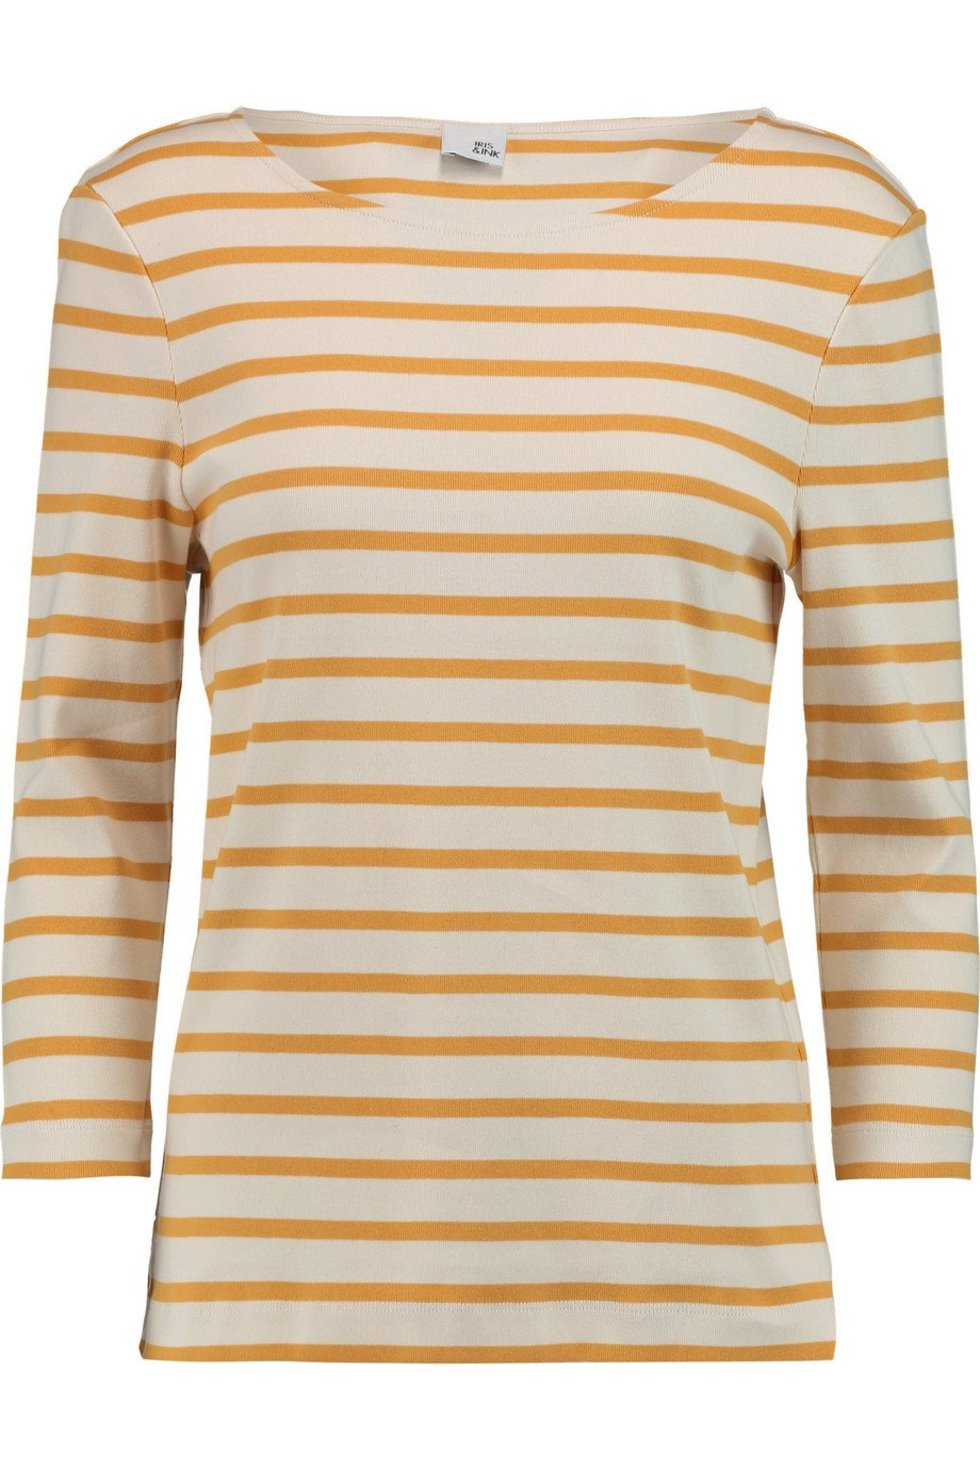 Iris and Ink Madeline breton striped stretch-cotton top